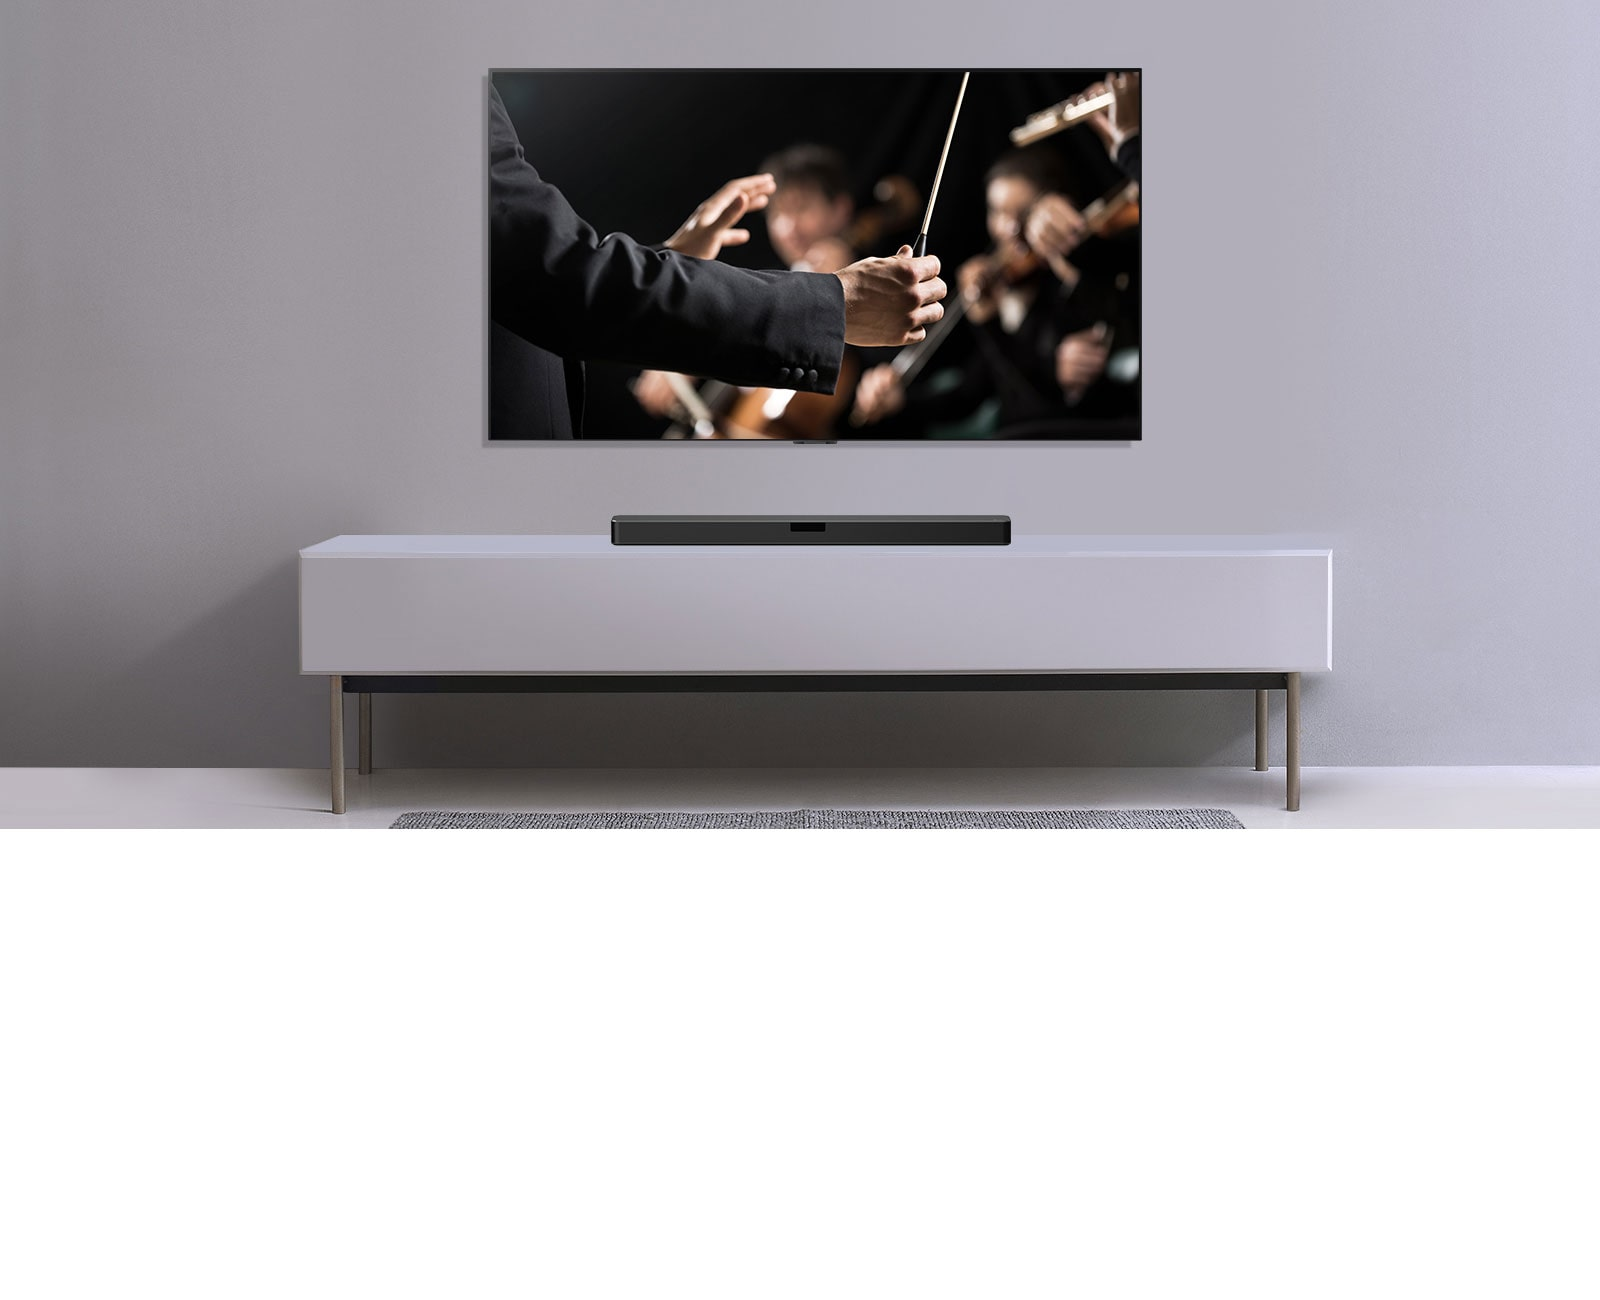 A TV is shown on a gray wall and LG Soundbar below it on a gray shelf. TV shows a conductor conducting an orchestra.